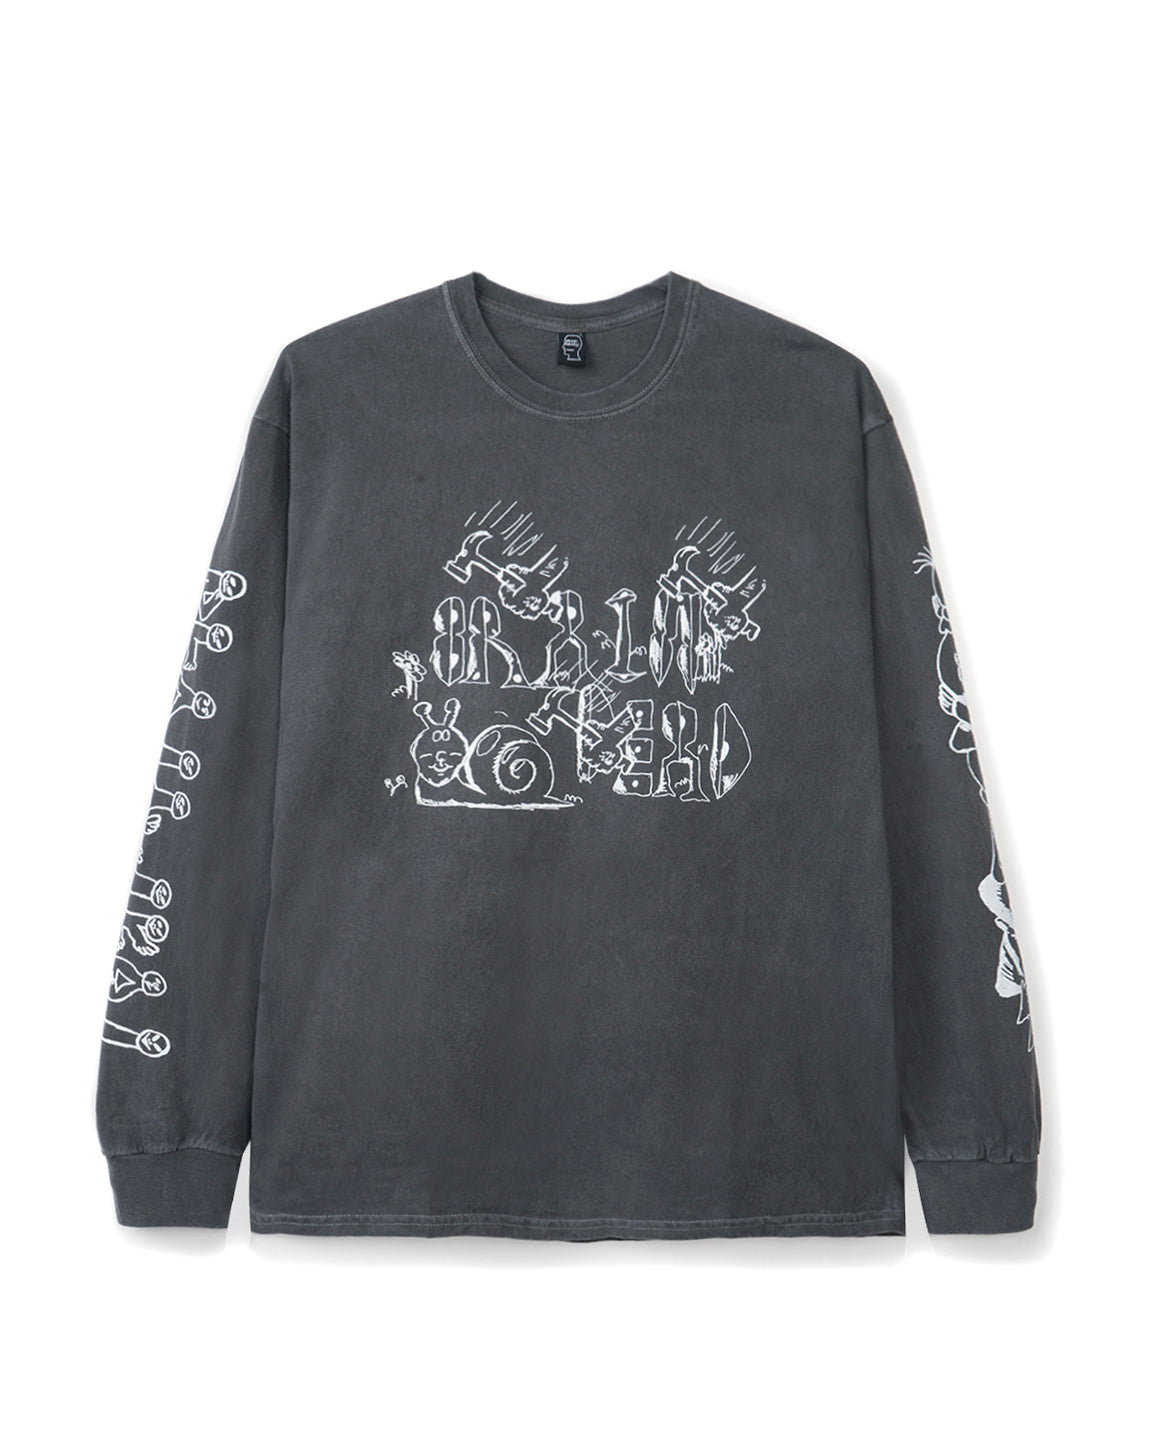 Leon's Girls Long Sleeve - Washed Black